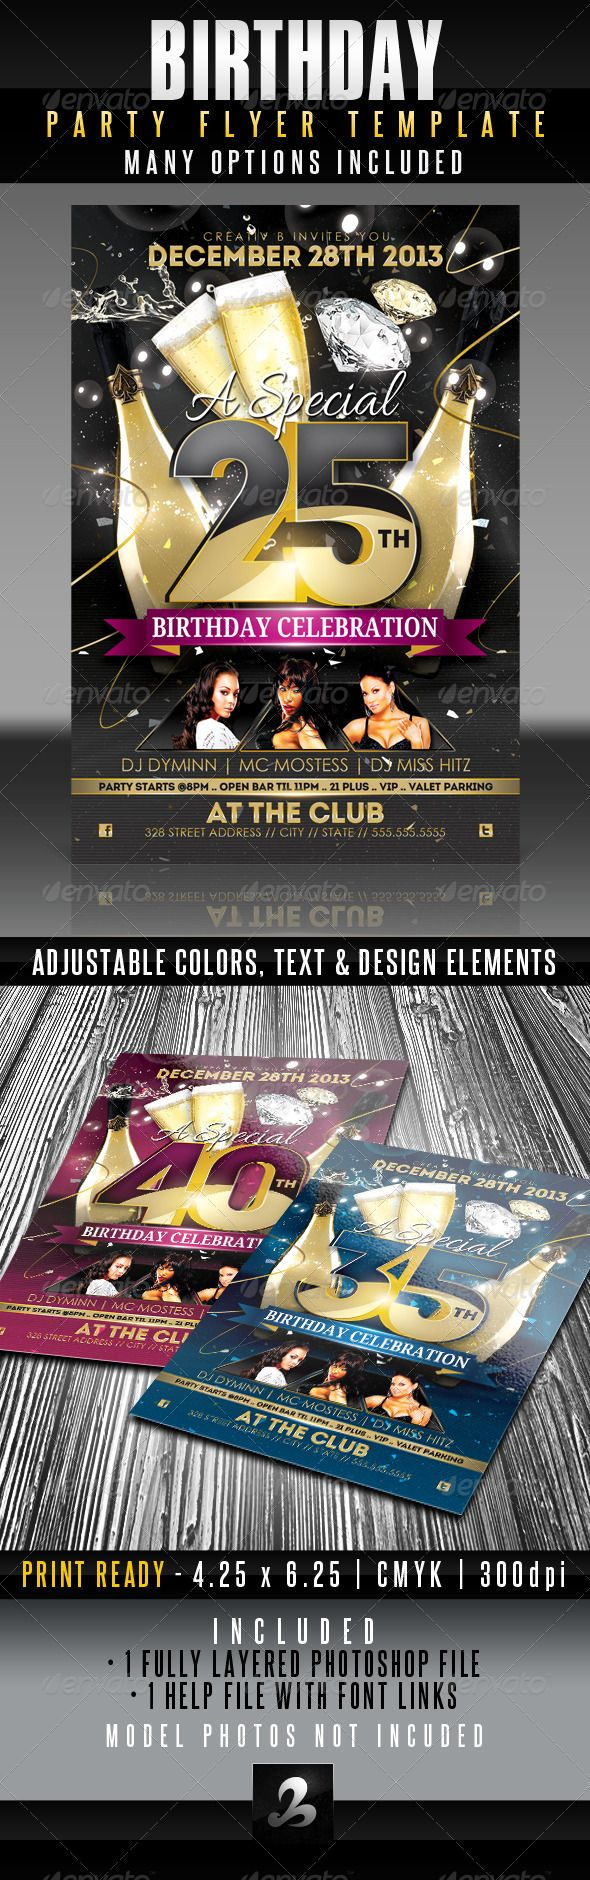 Beautiful Birthday Flyer Ideas On Pinterest How To Create - Birthday invitation template graphicriver